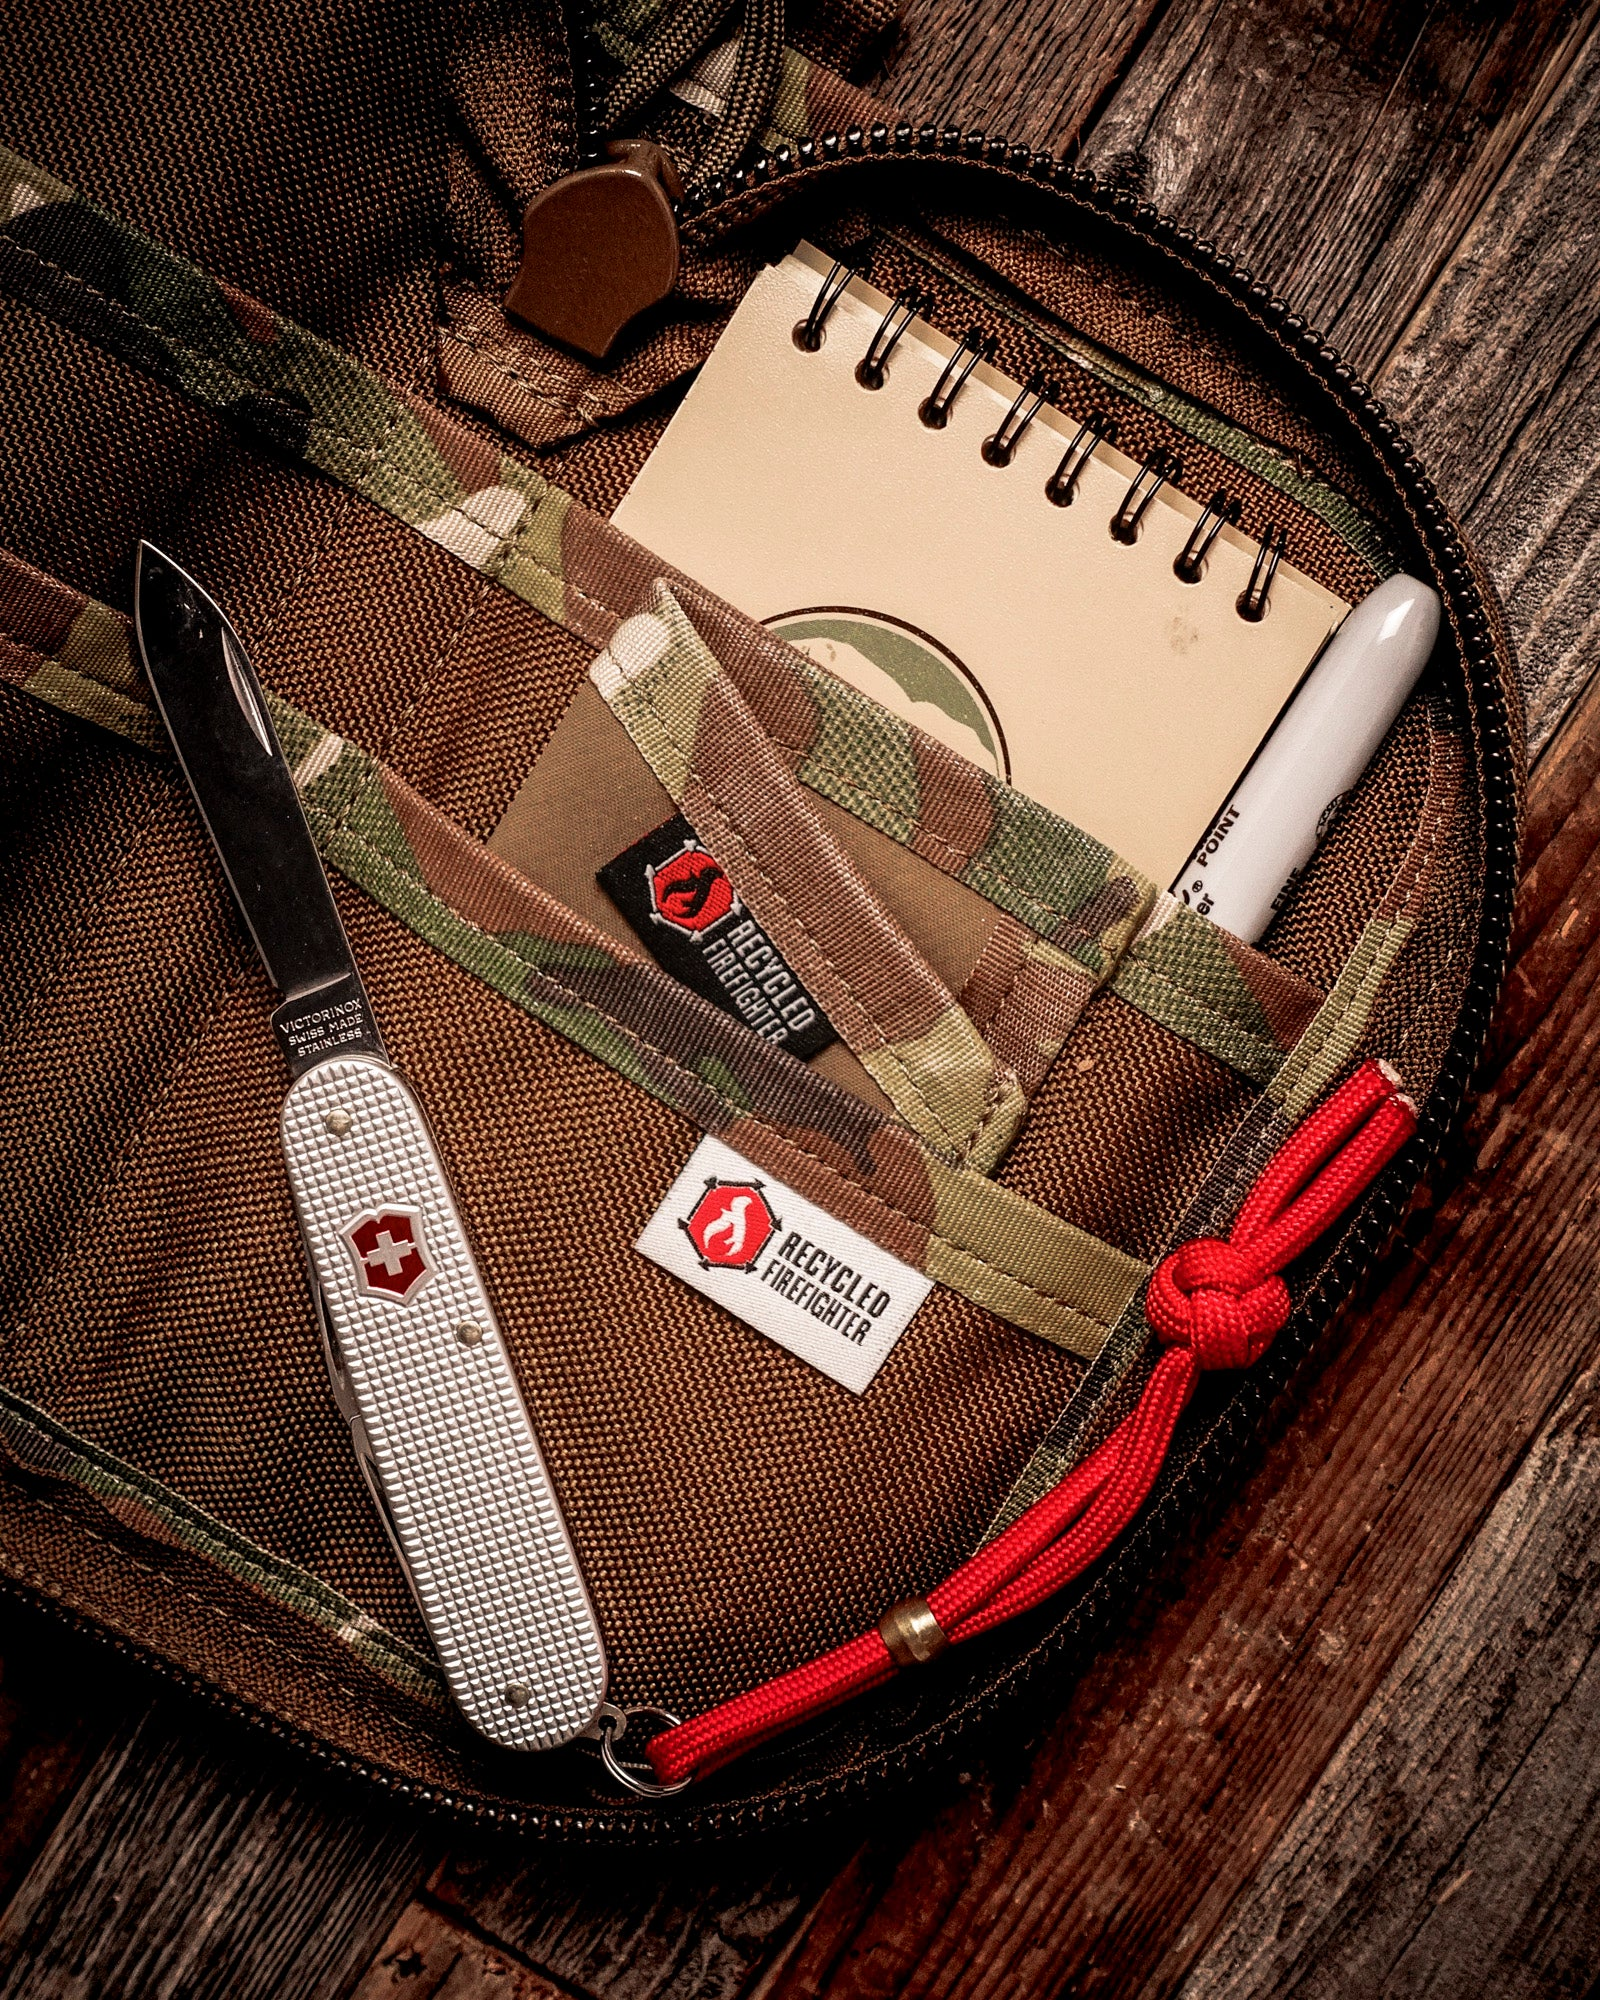 Swiss Army Knife Cadet Review